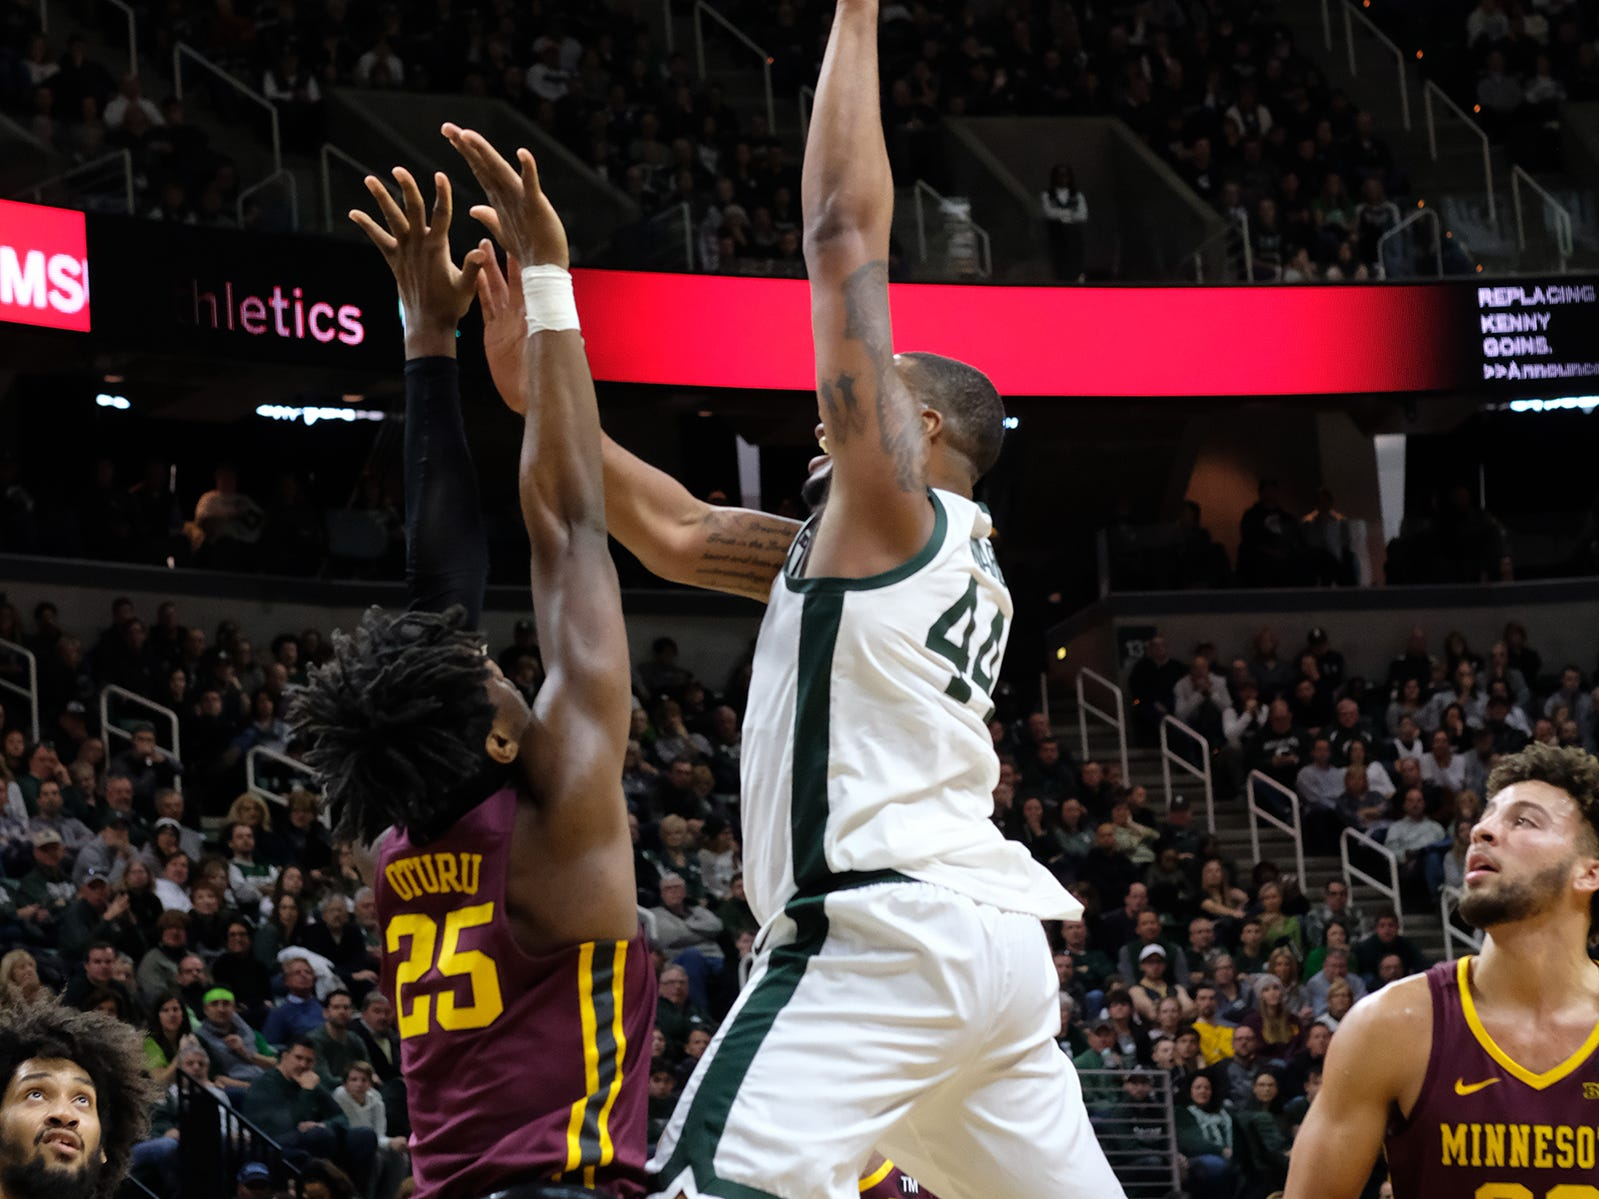 MSU's Nick Ward shoots against Minnesota's Daniel Oturu in a Big Ten matchup Saturday, Feb. 9, 2019.